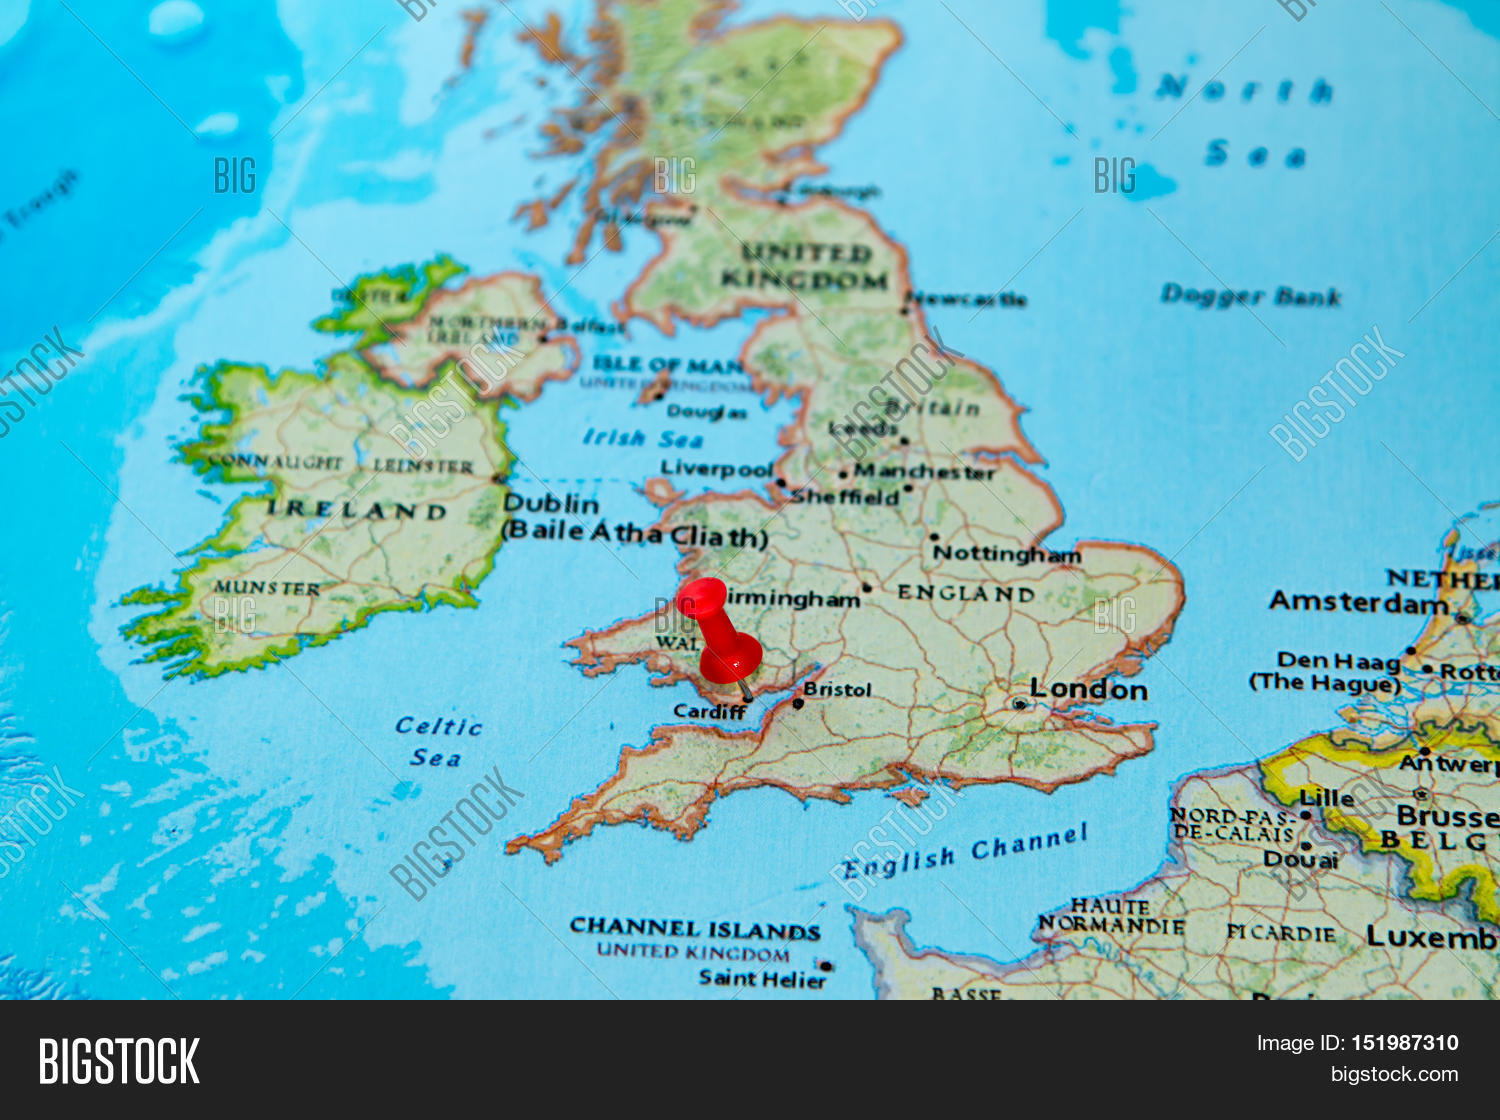 Cardiff uk pinned on map europe image photo bigstock cardiff uk pinned on a map of europe gumiabroncs Choice Image